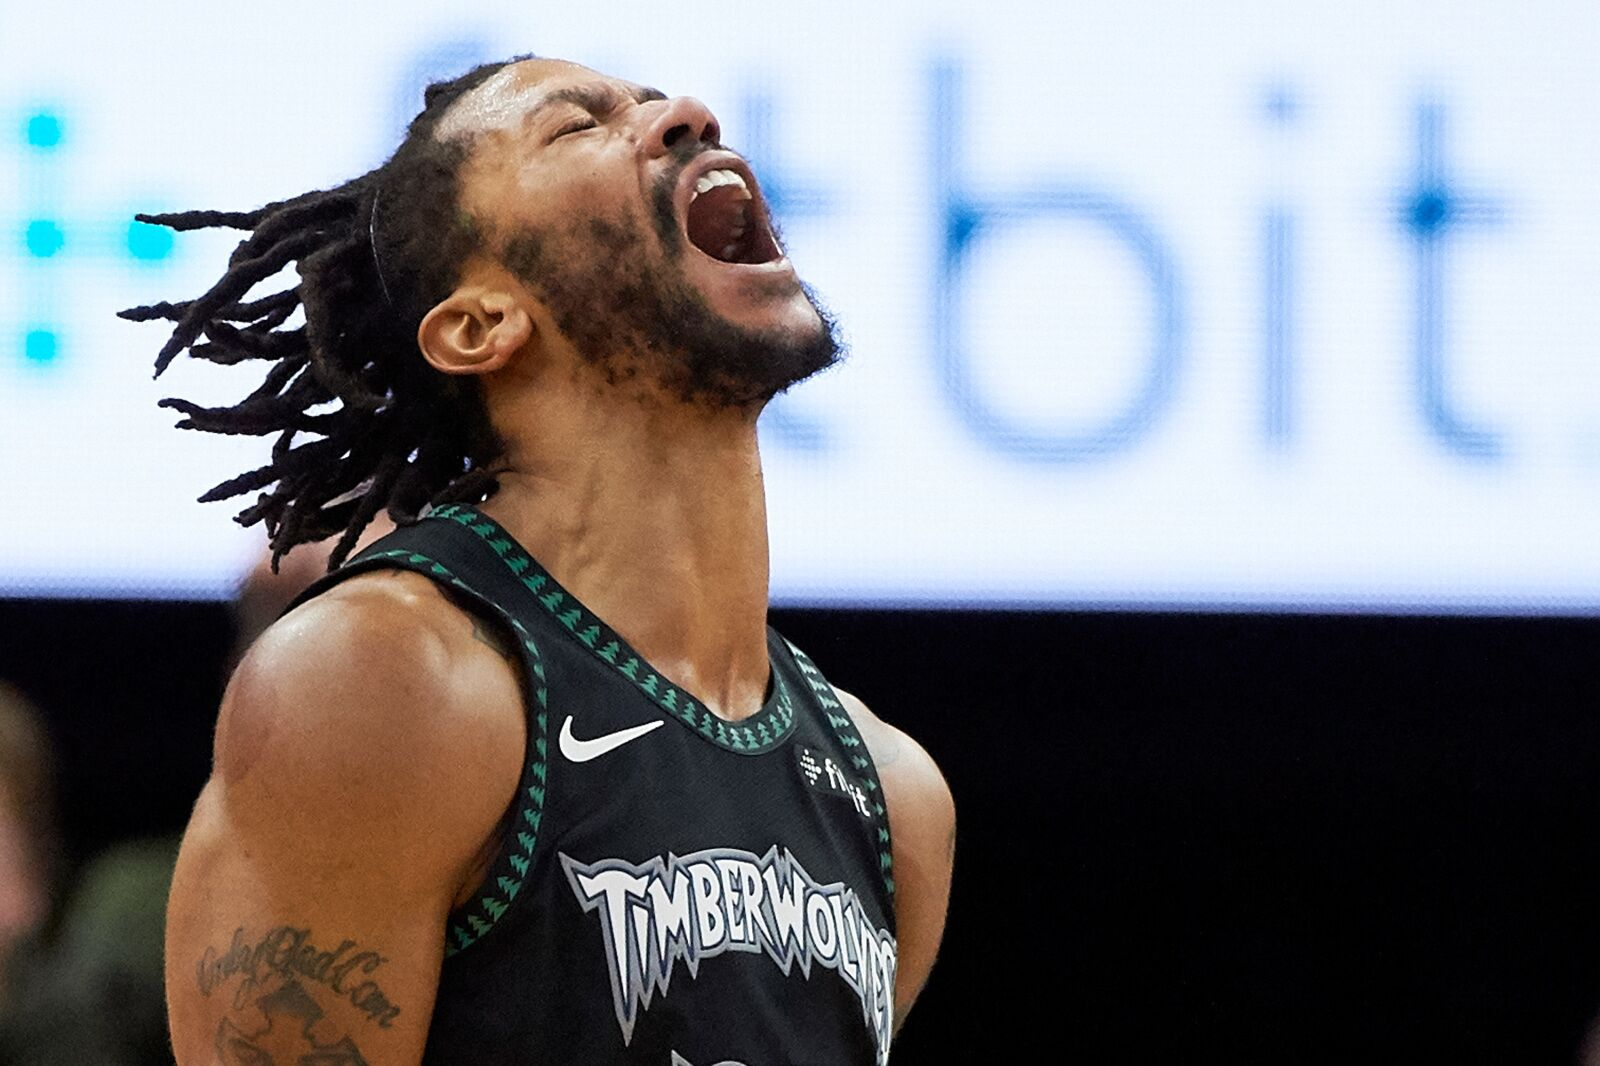 reputable site abe14 10c04 Minnesota Timberwolves: Derrick Rose drops 50, Wolves beat Jazz